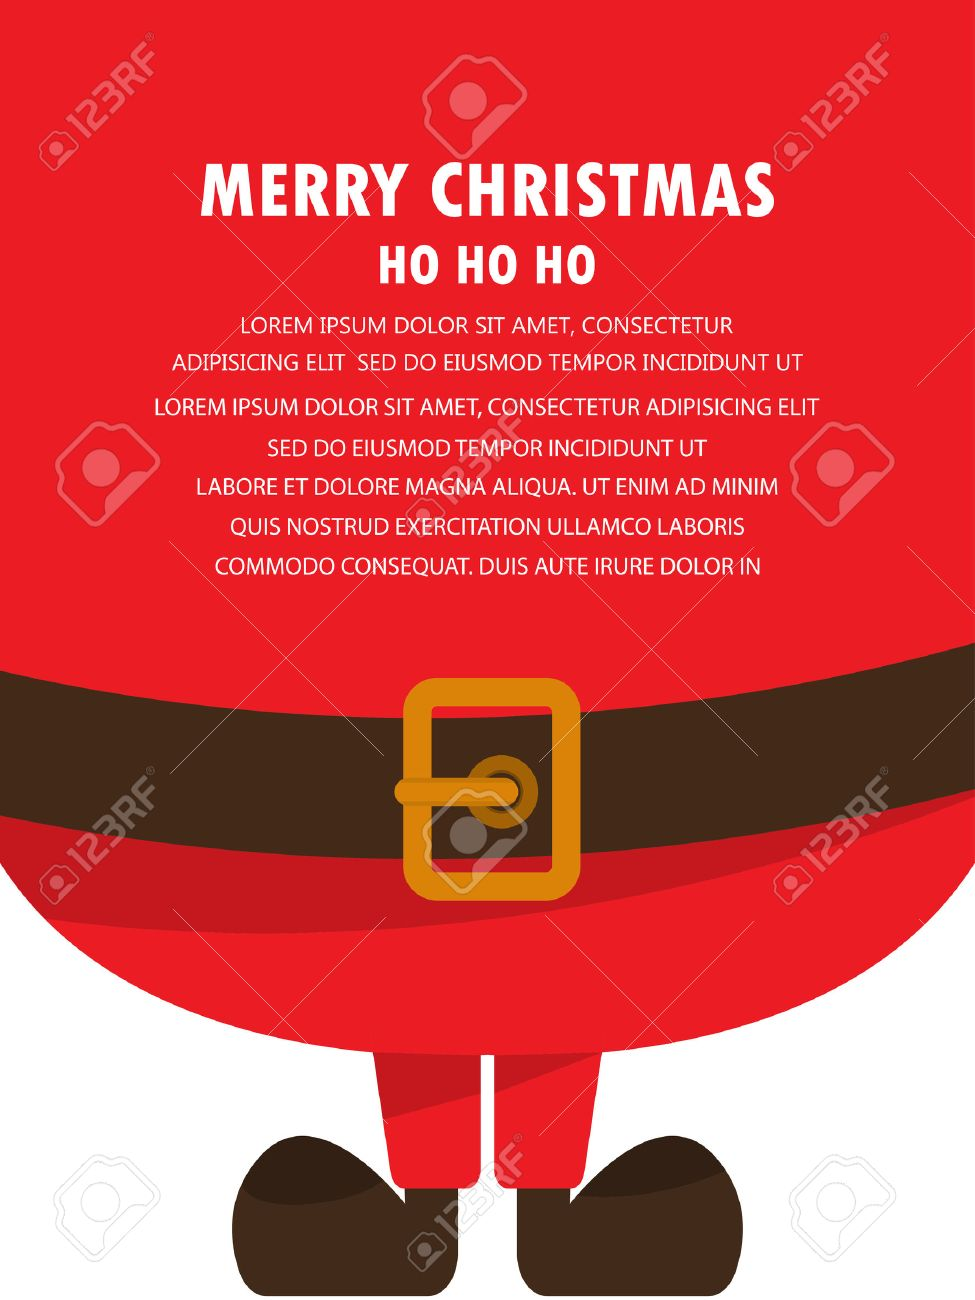 xmas voucher stock photos pictures 13 427 royalty xmas xmas voucher christmas invitation and greeting template santa clause can be use for